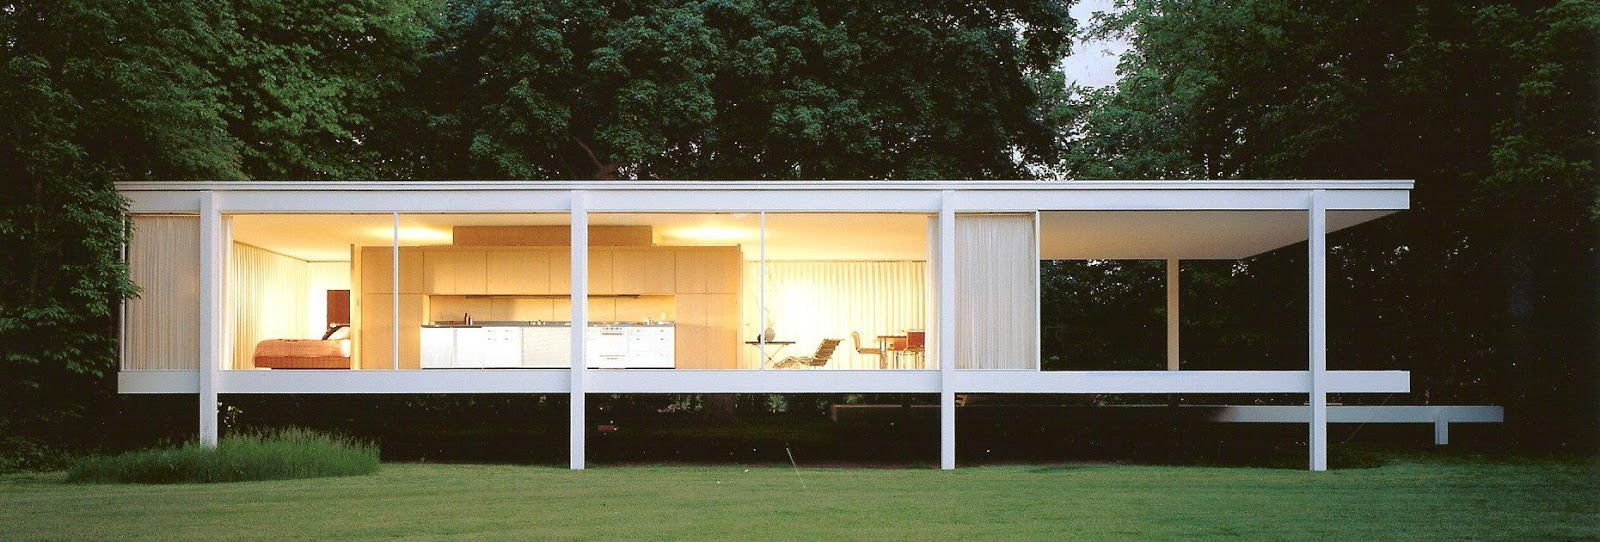 Van Der Rohe The Marvelous Masterpieces Of Ludwig Mies Van Der Rohe Nanawall